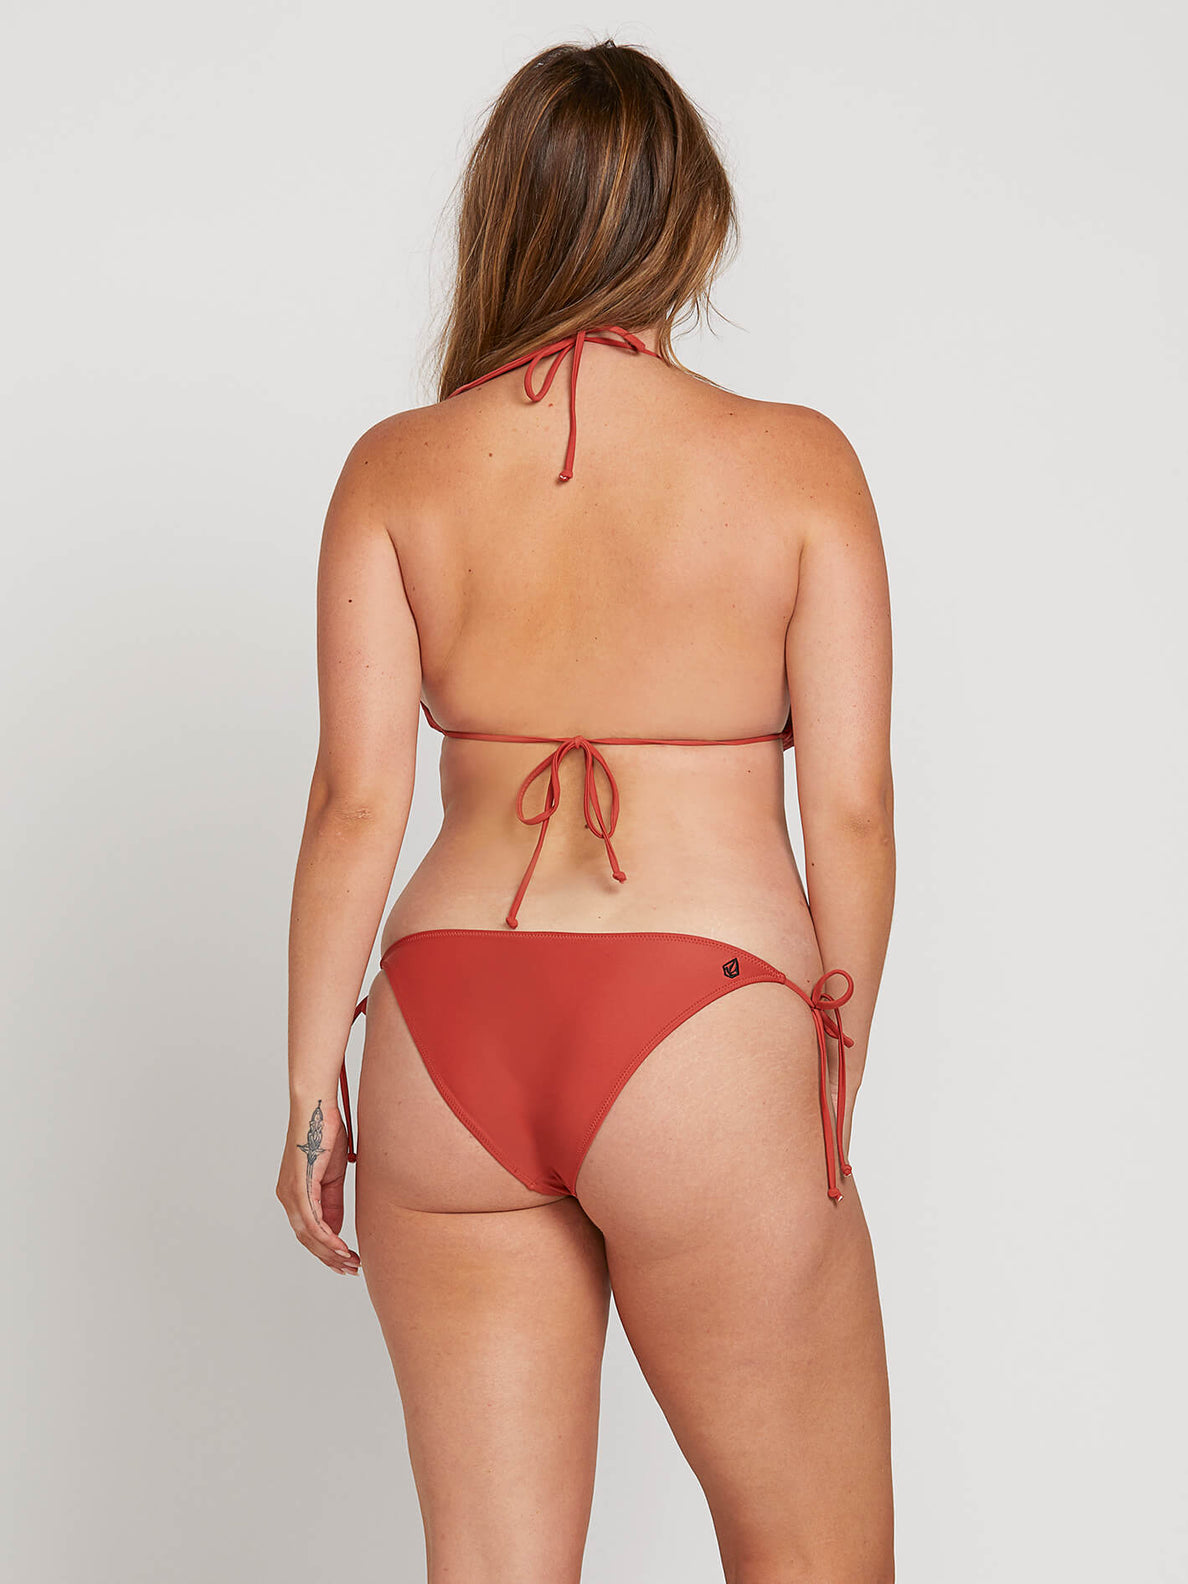 Simply Solid Triangle Top In Burnt Red, Back Extended Size View